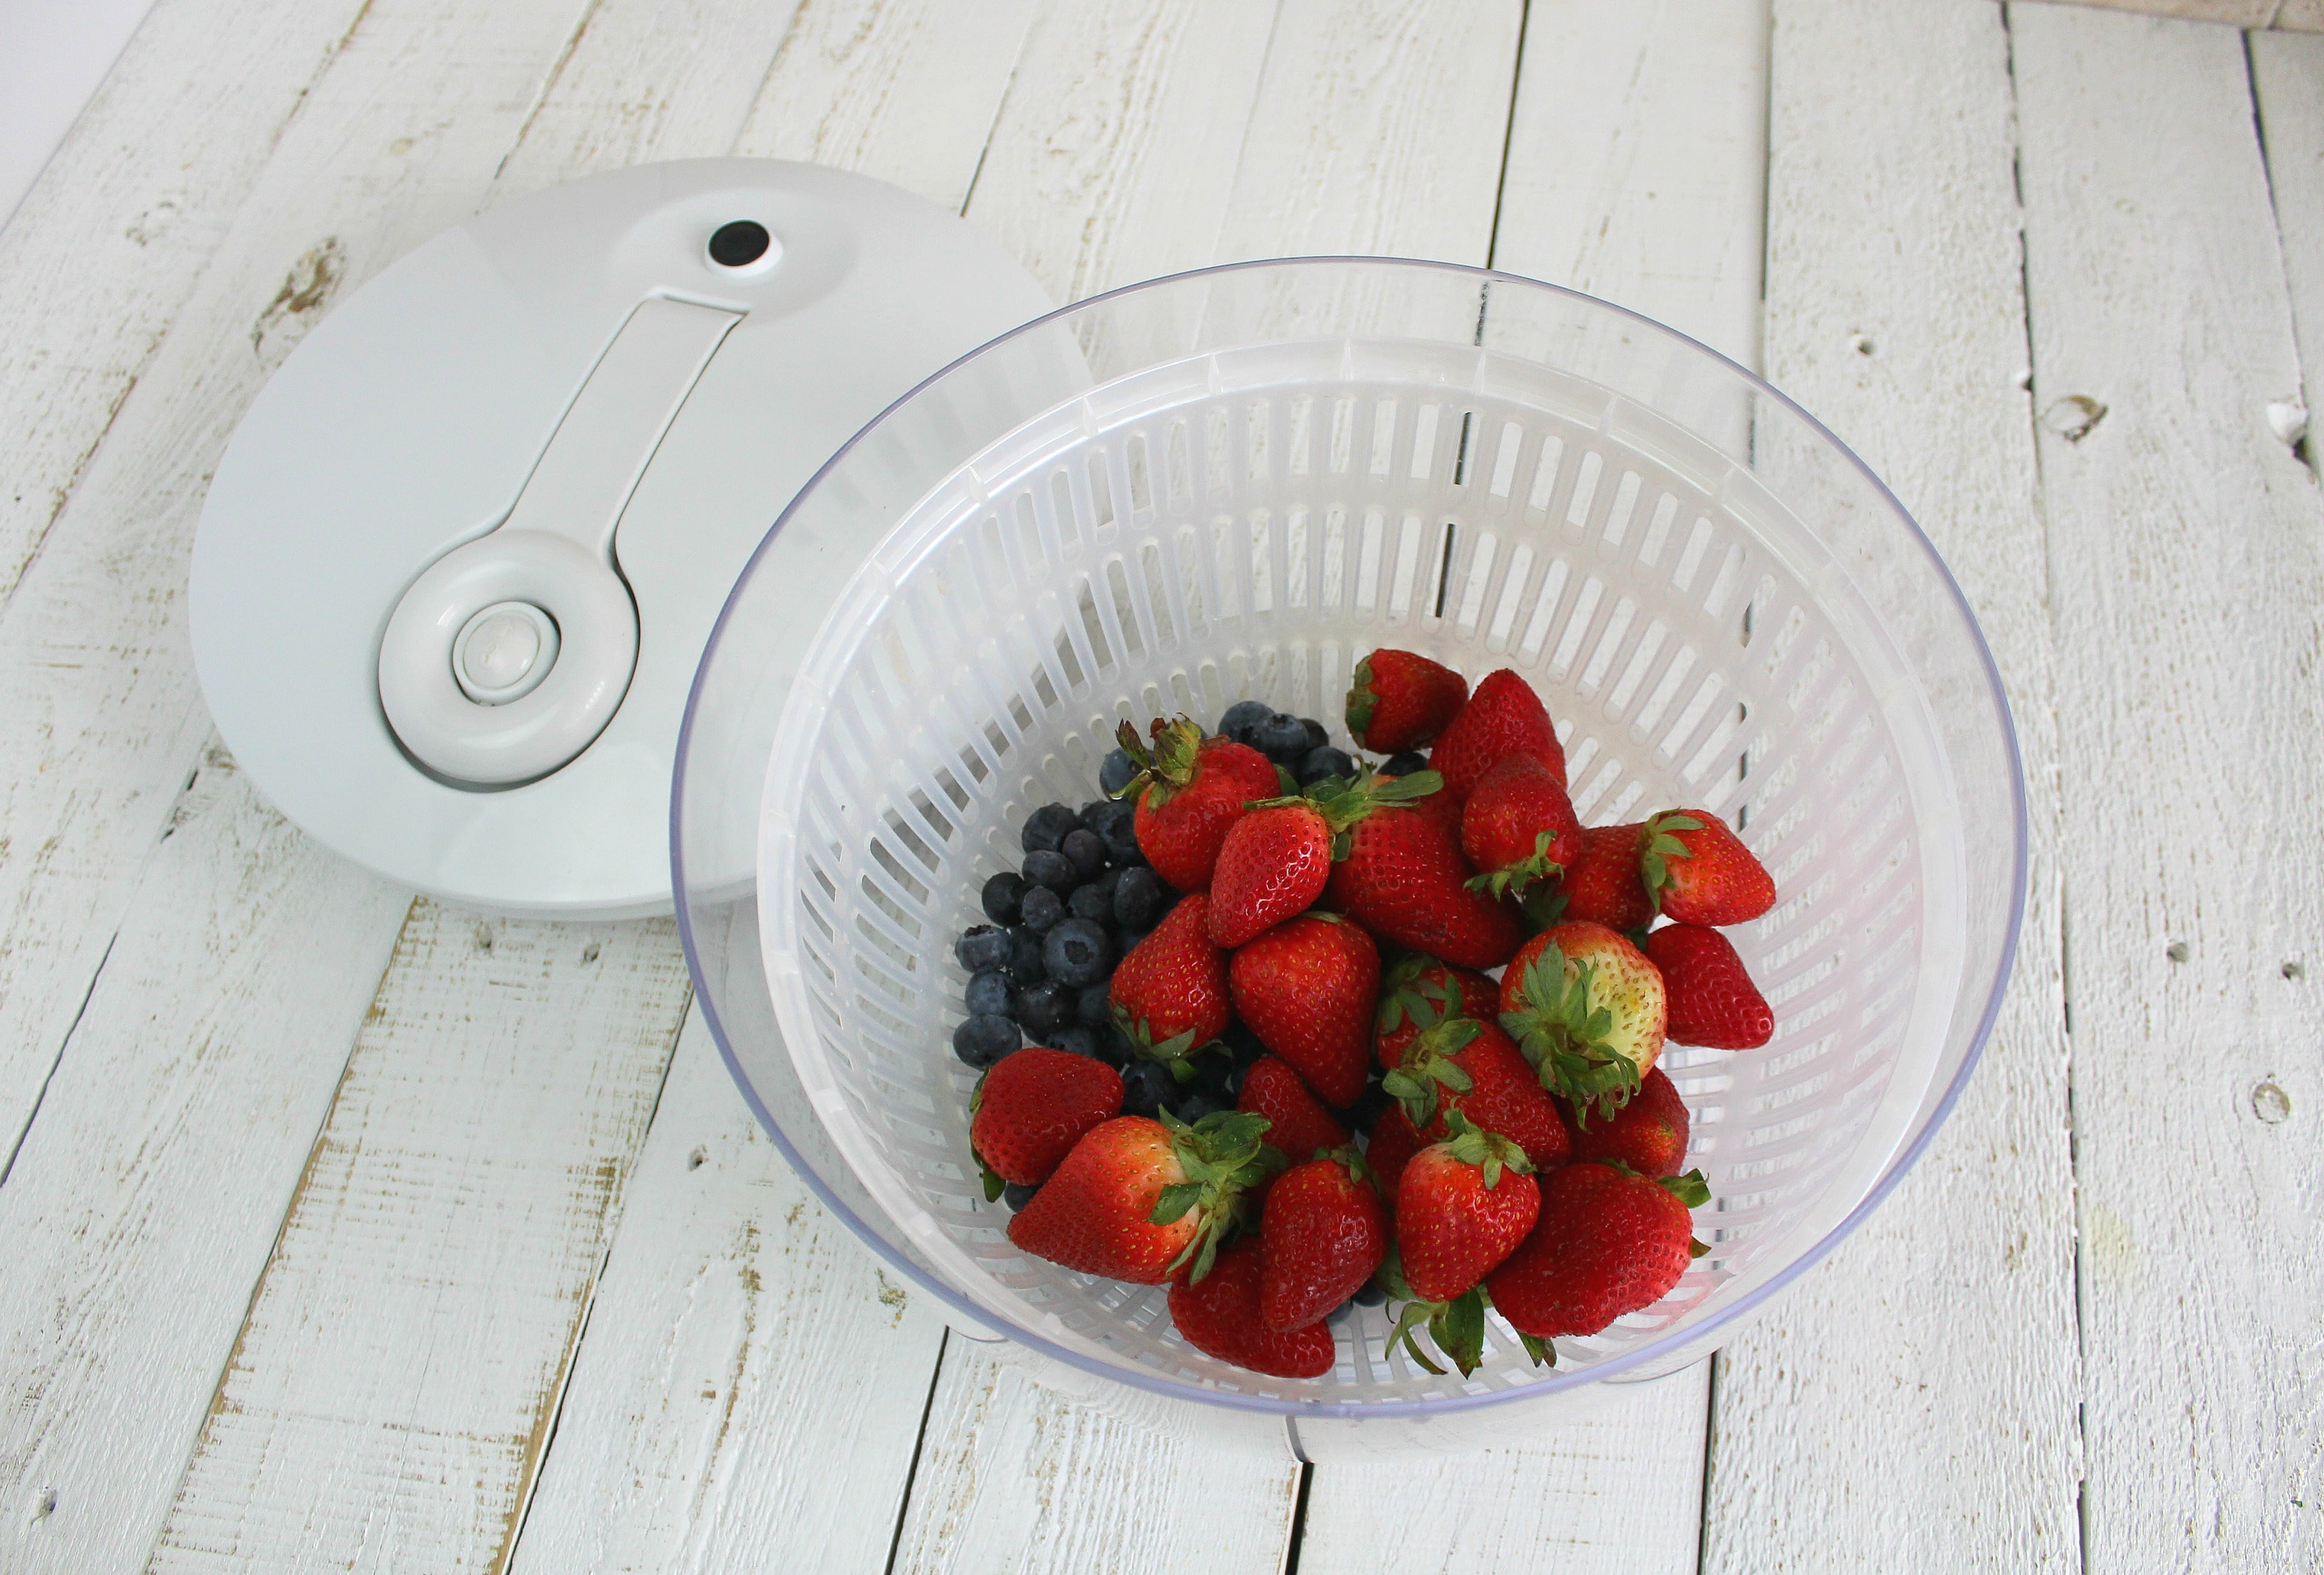 Wash berries in a bowl